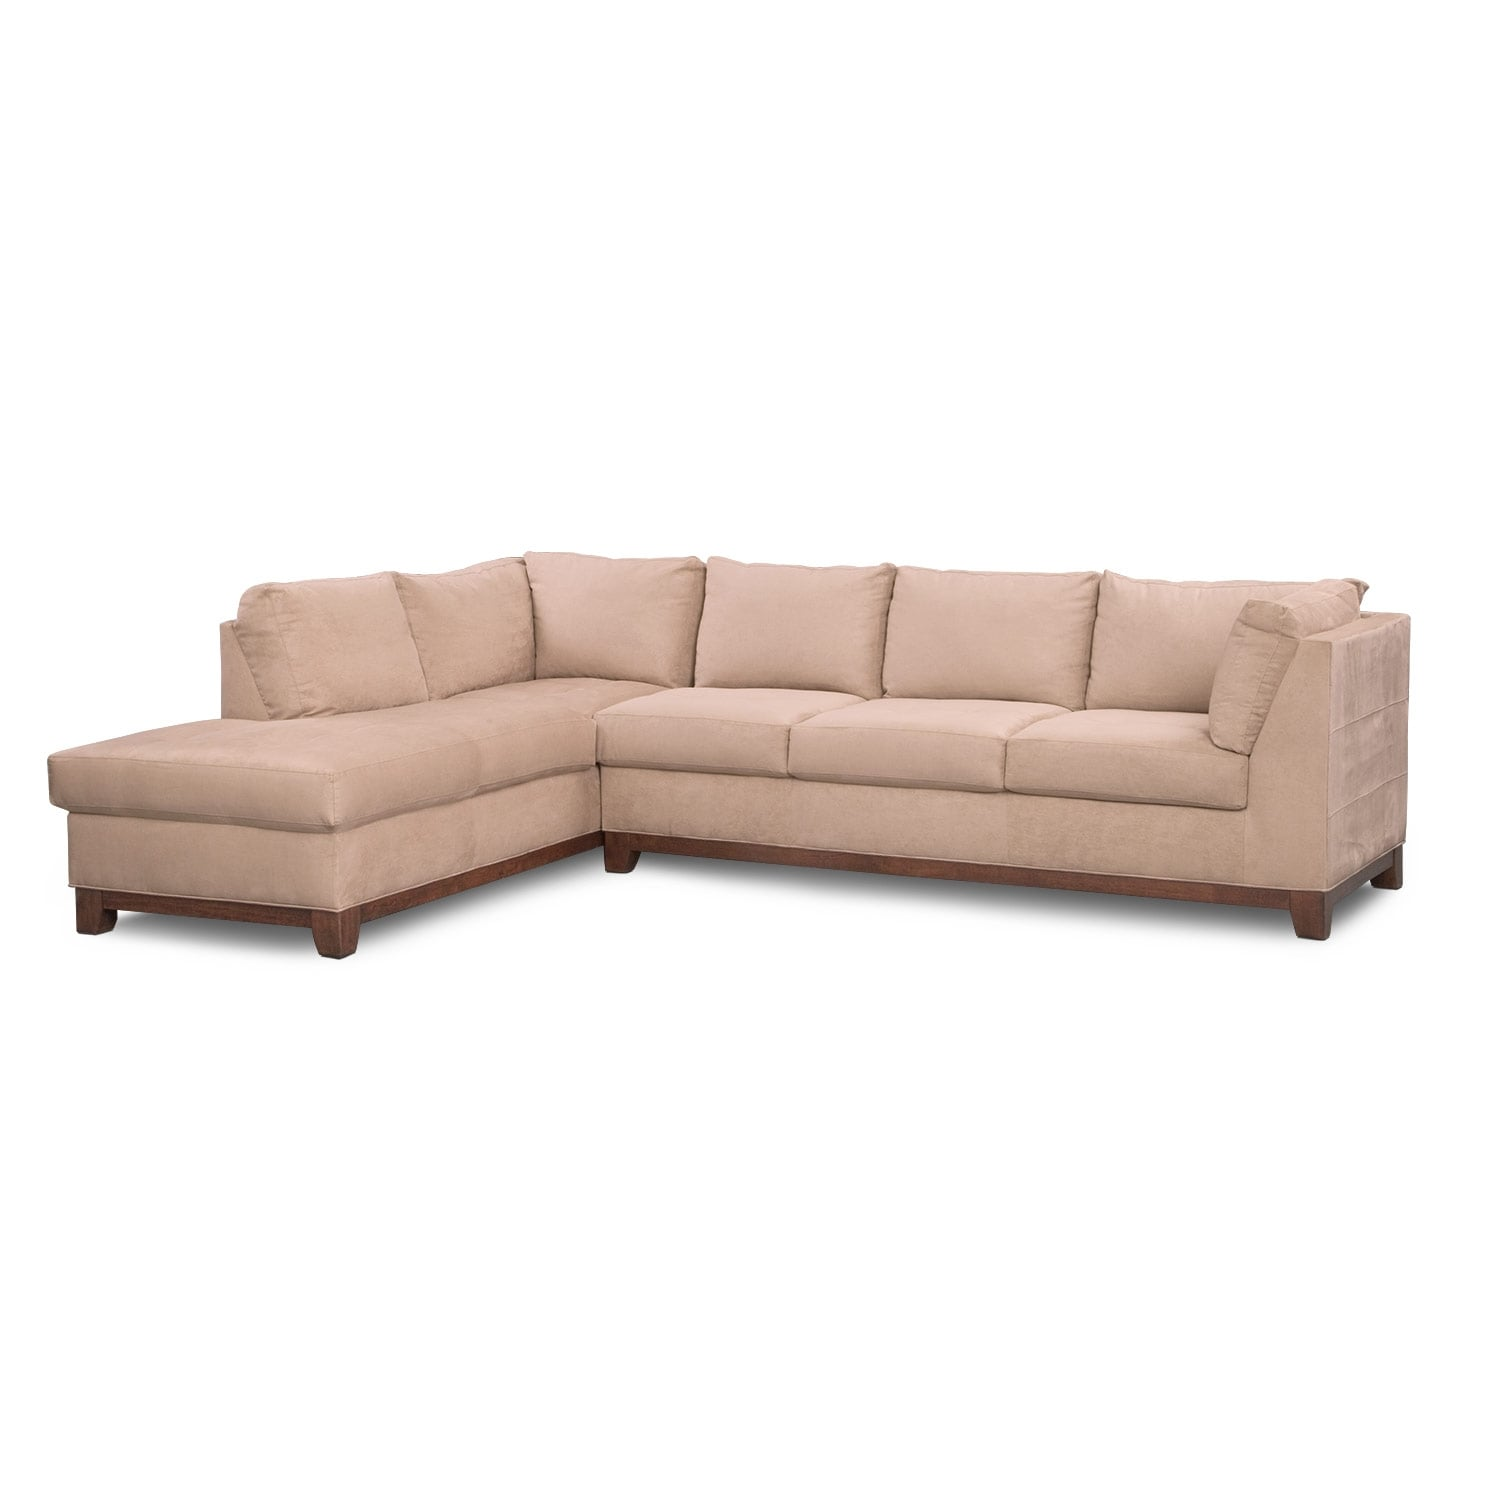 Sectional Sofas Value City Funiture Value City Furniture